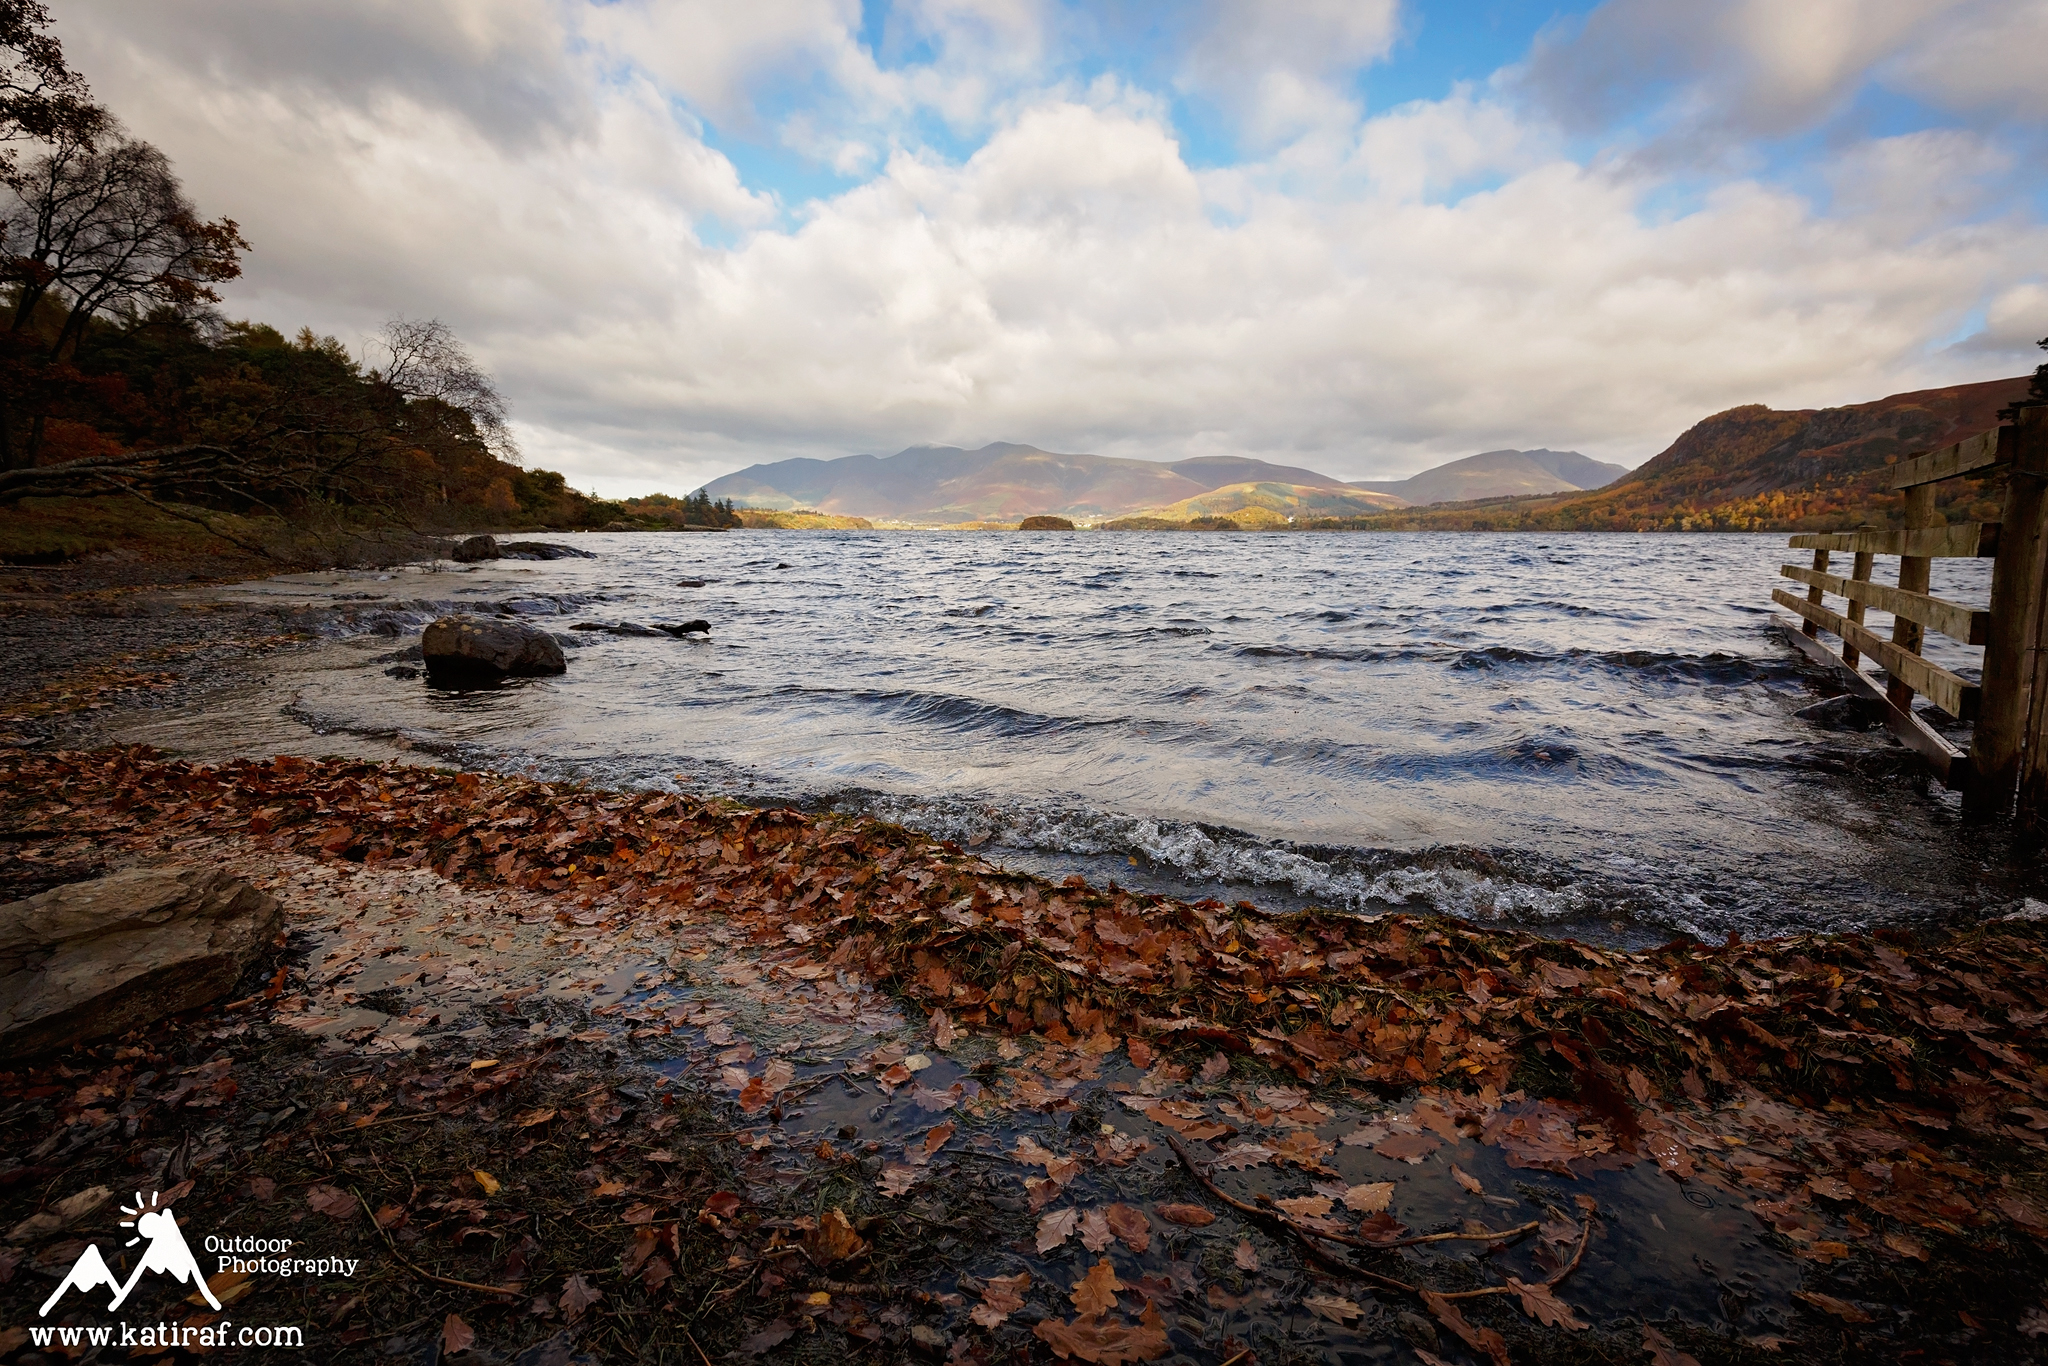 katiraf-derwentwater-kae-district-keswick